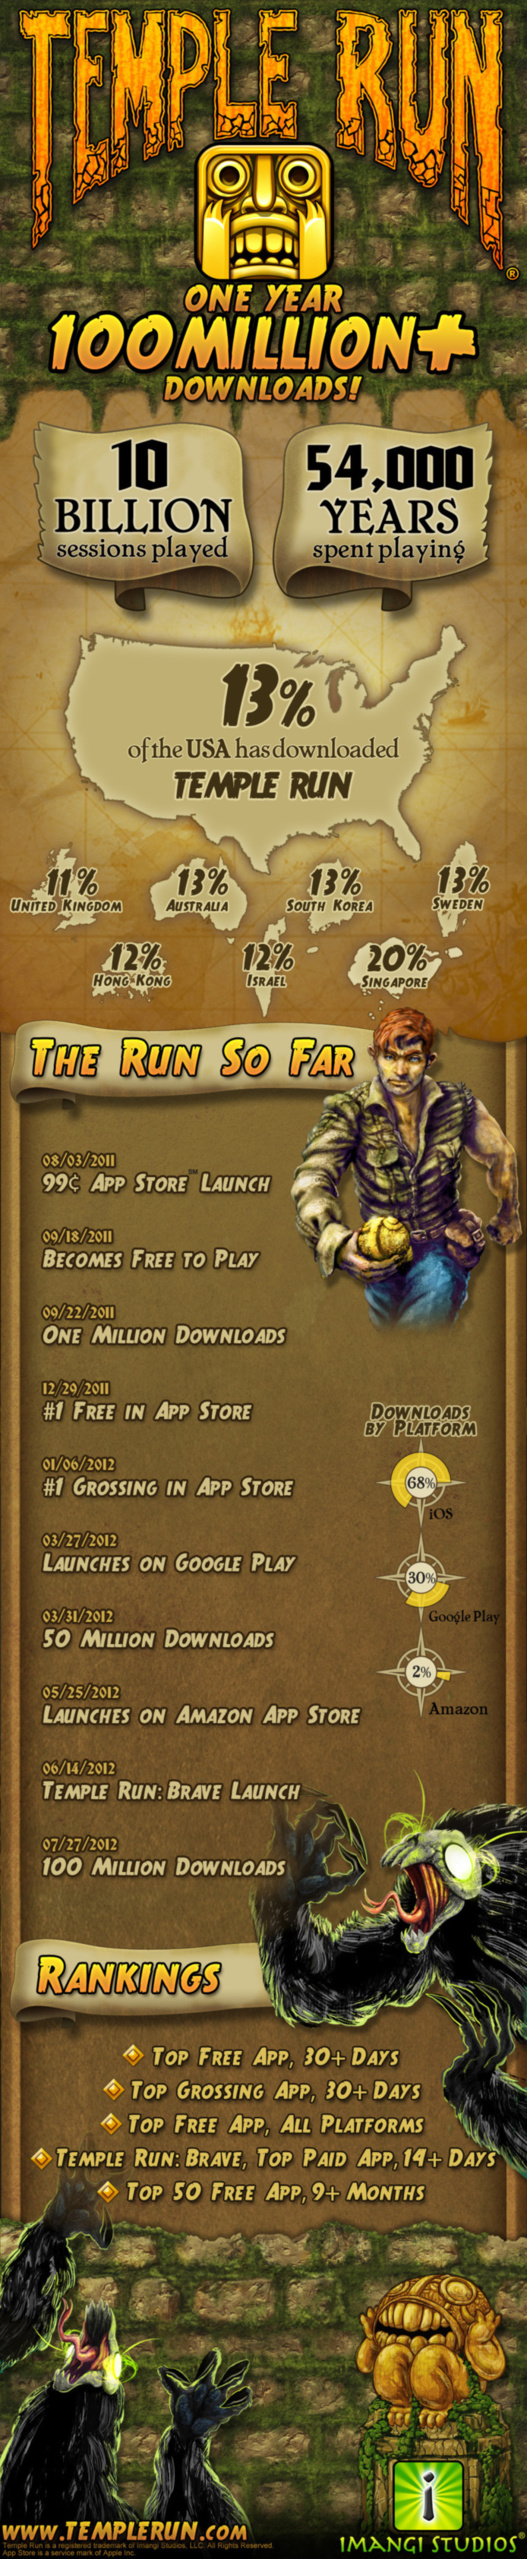 Temple Run - 100 millions de téléchargements en 1 an - En 1 image